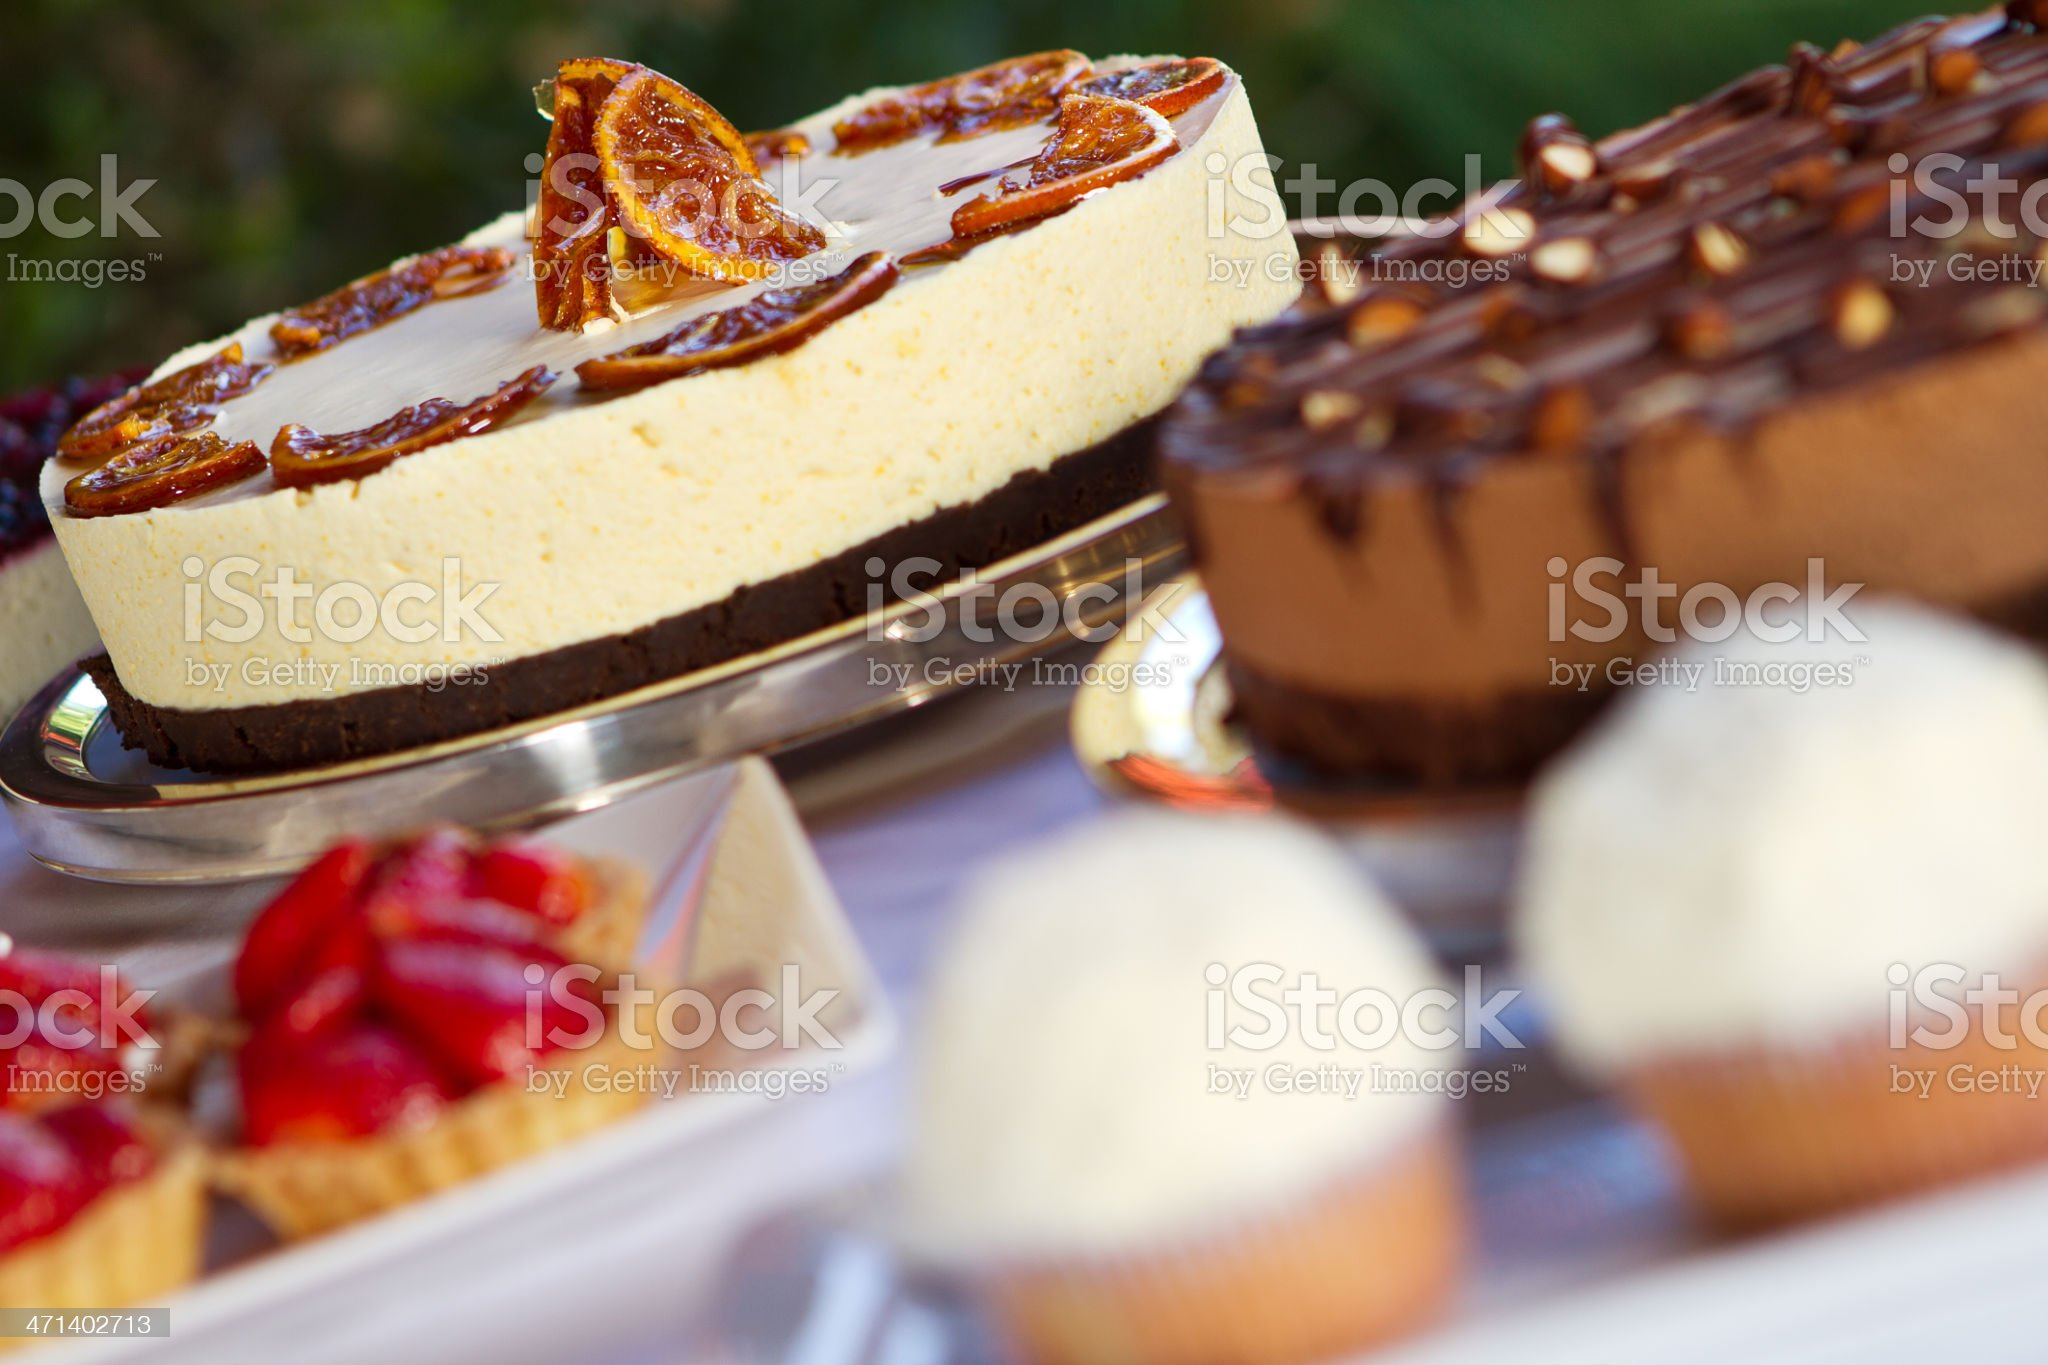 Assorted desserts royalty-free stock photo